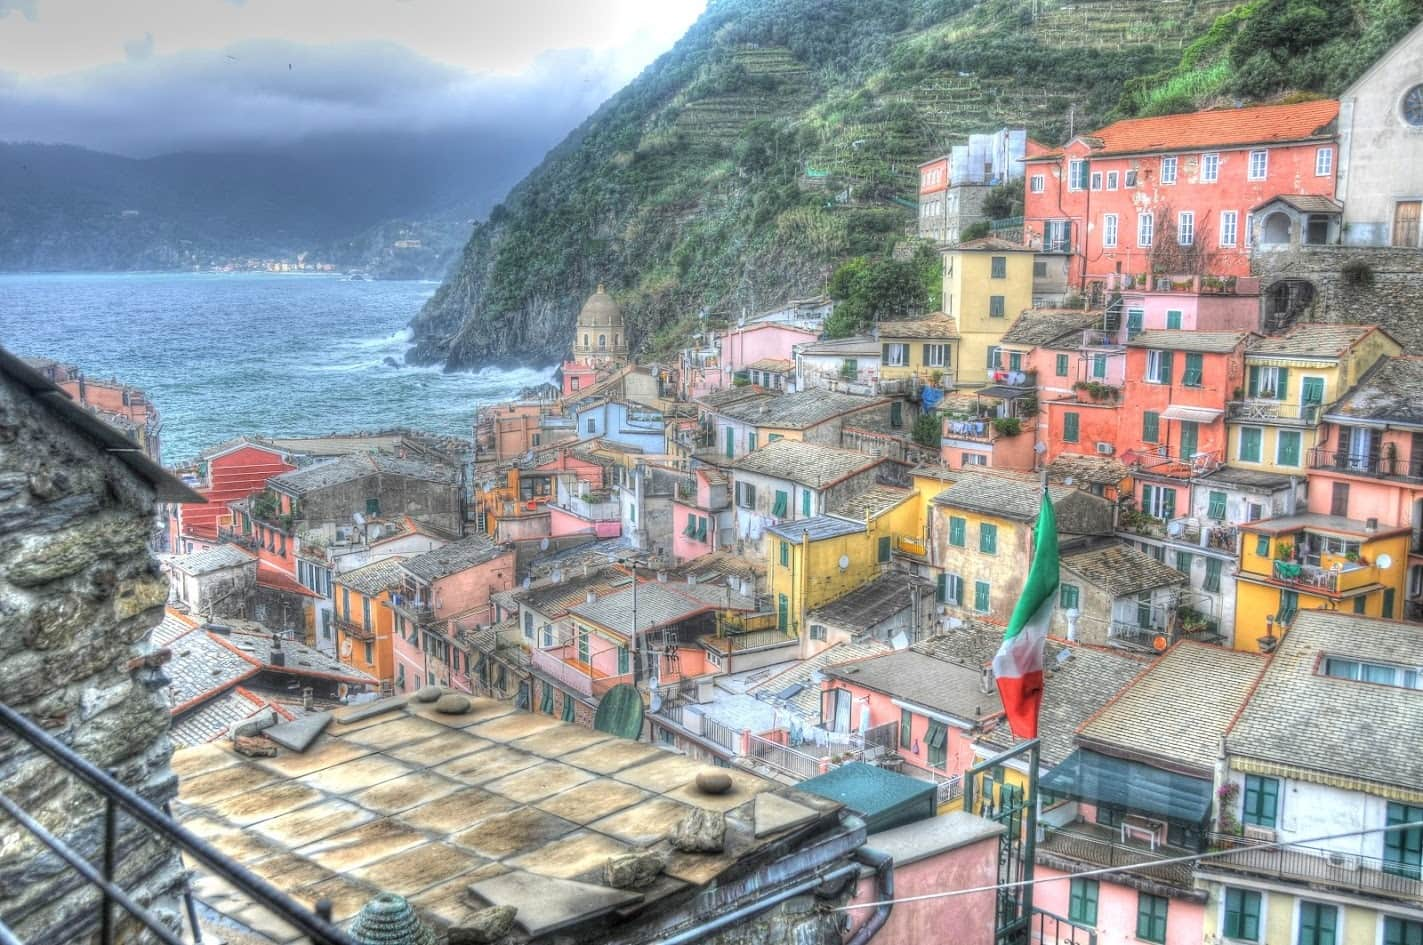 cinque terre, italy hiking trails, italian hiking trails, best hiking trails in italy,